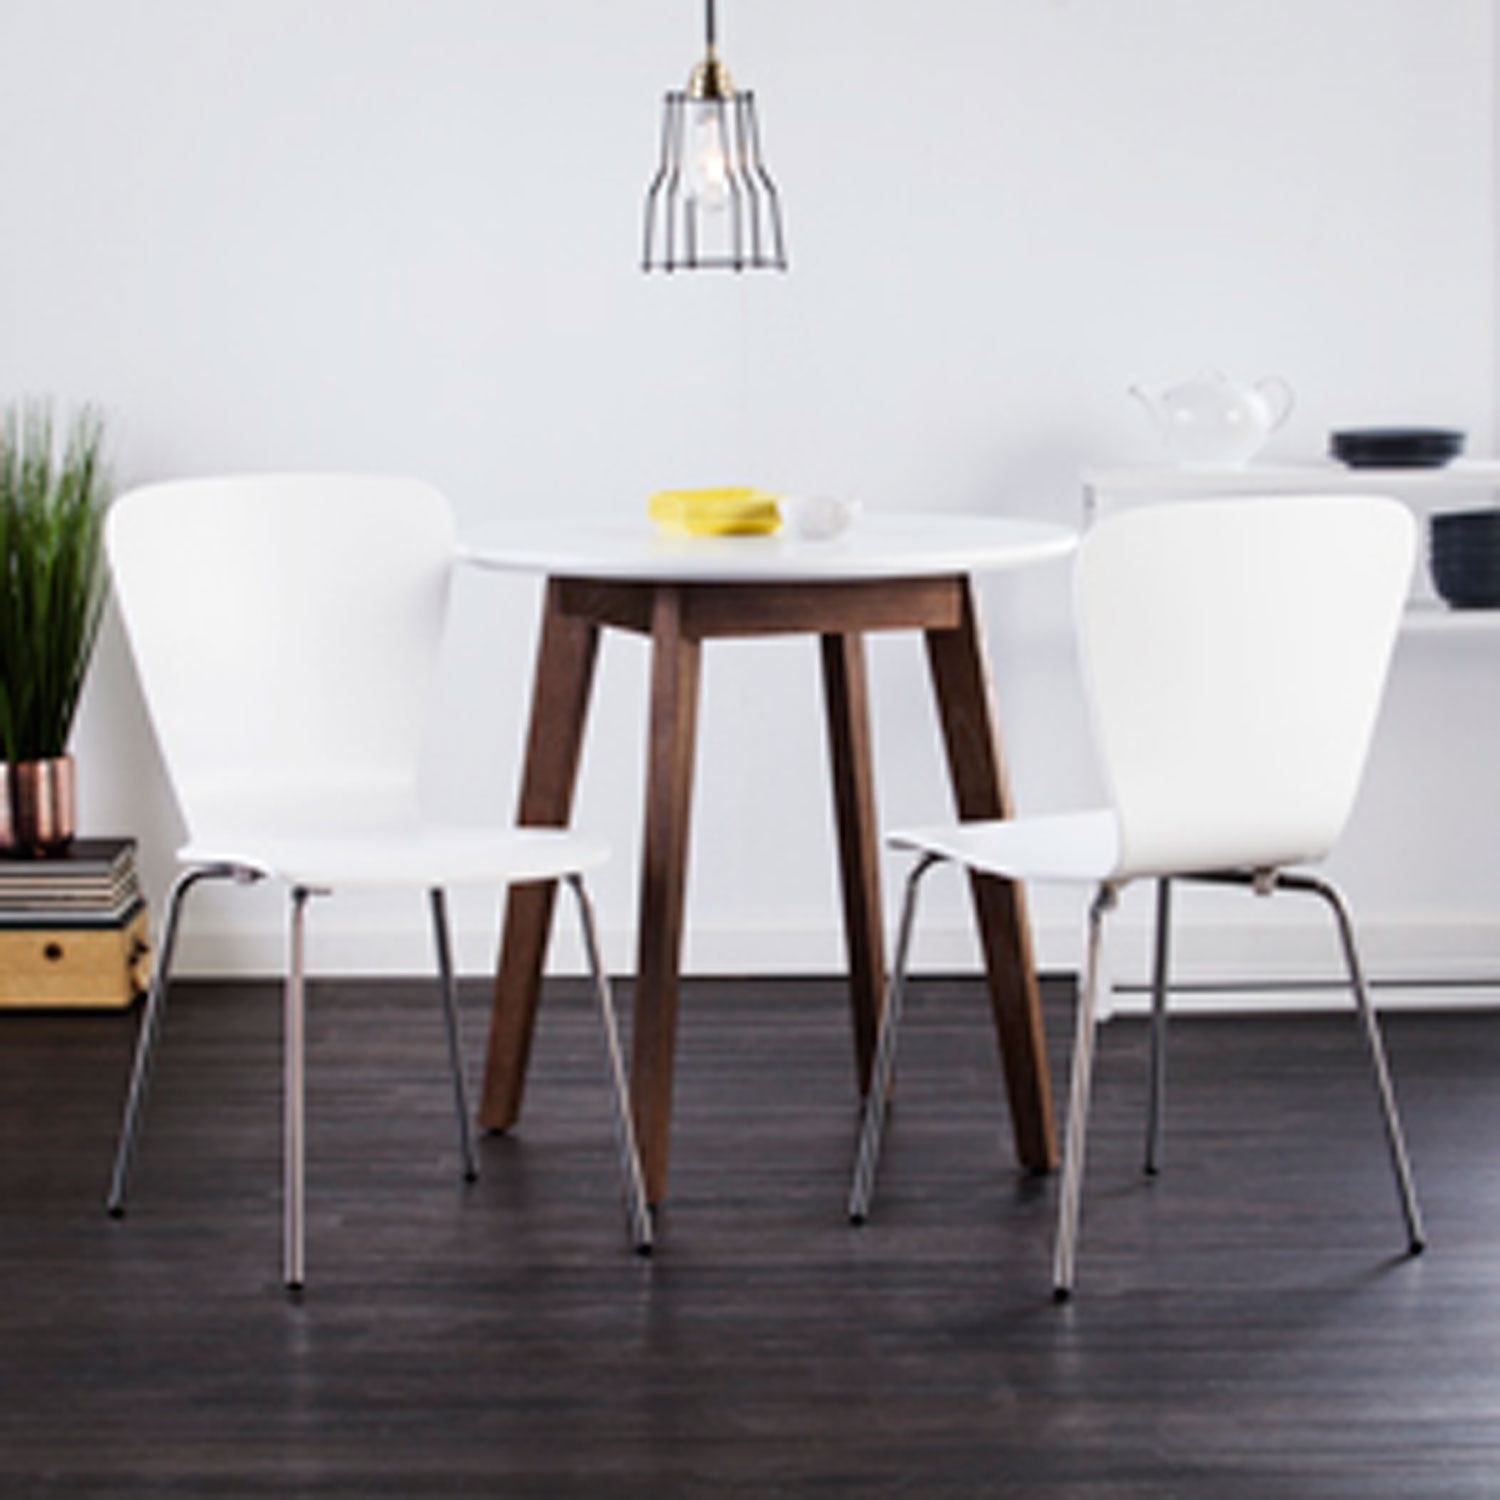 Inspiration about Well Liked Holly & Martin Cadby Bentwood Side Chairs White, Set Of 2 Bc8238 With Pearson White Slipcovered Side Chairs (#7 of 20)